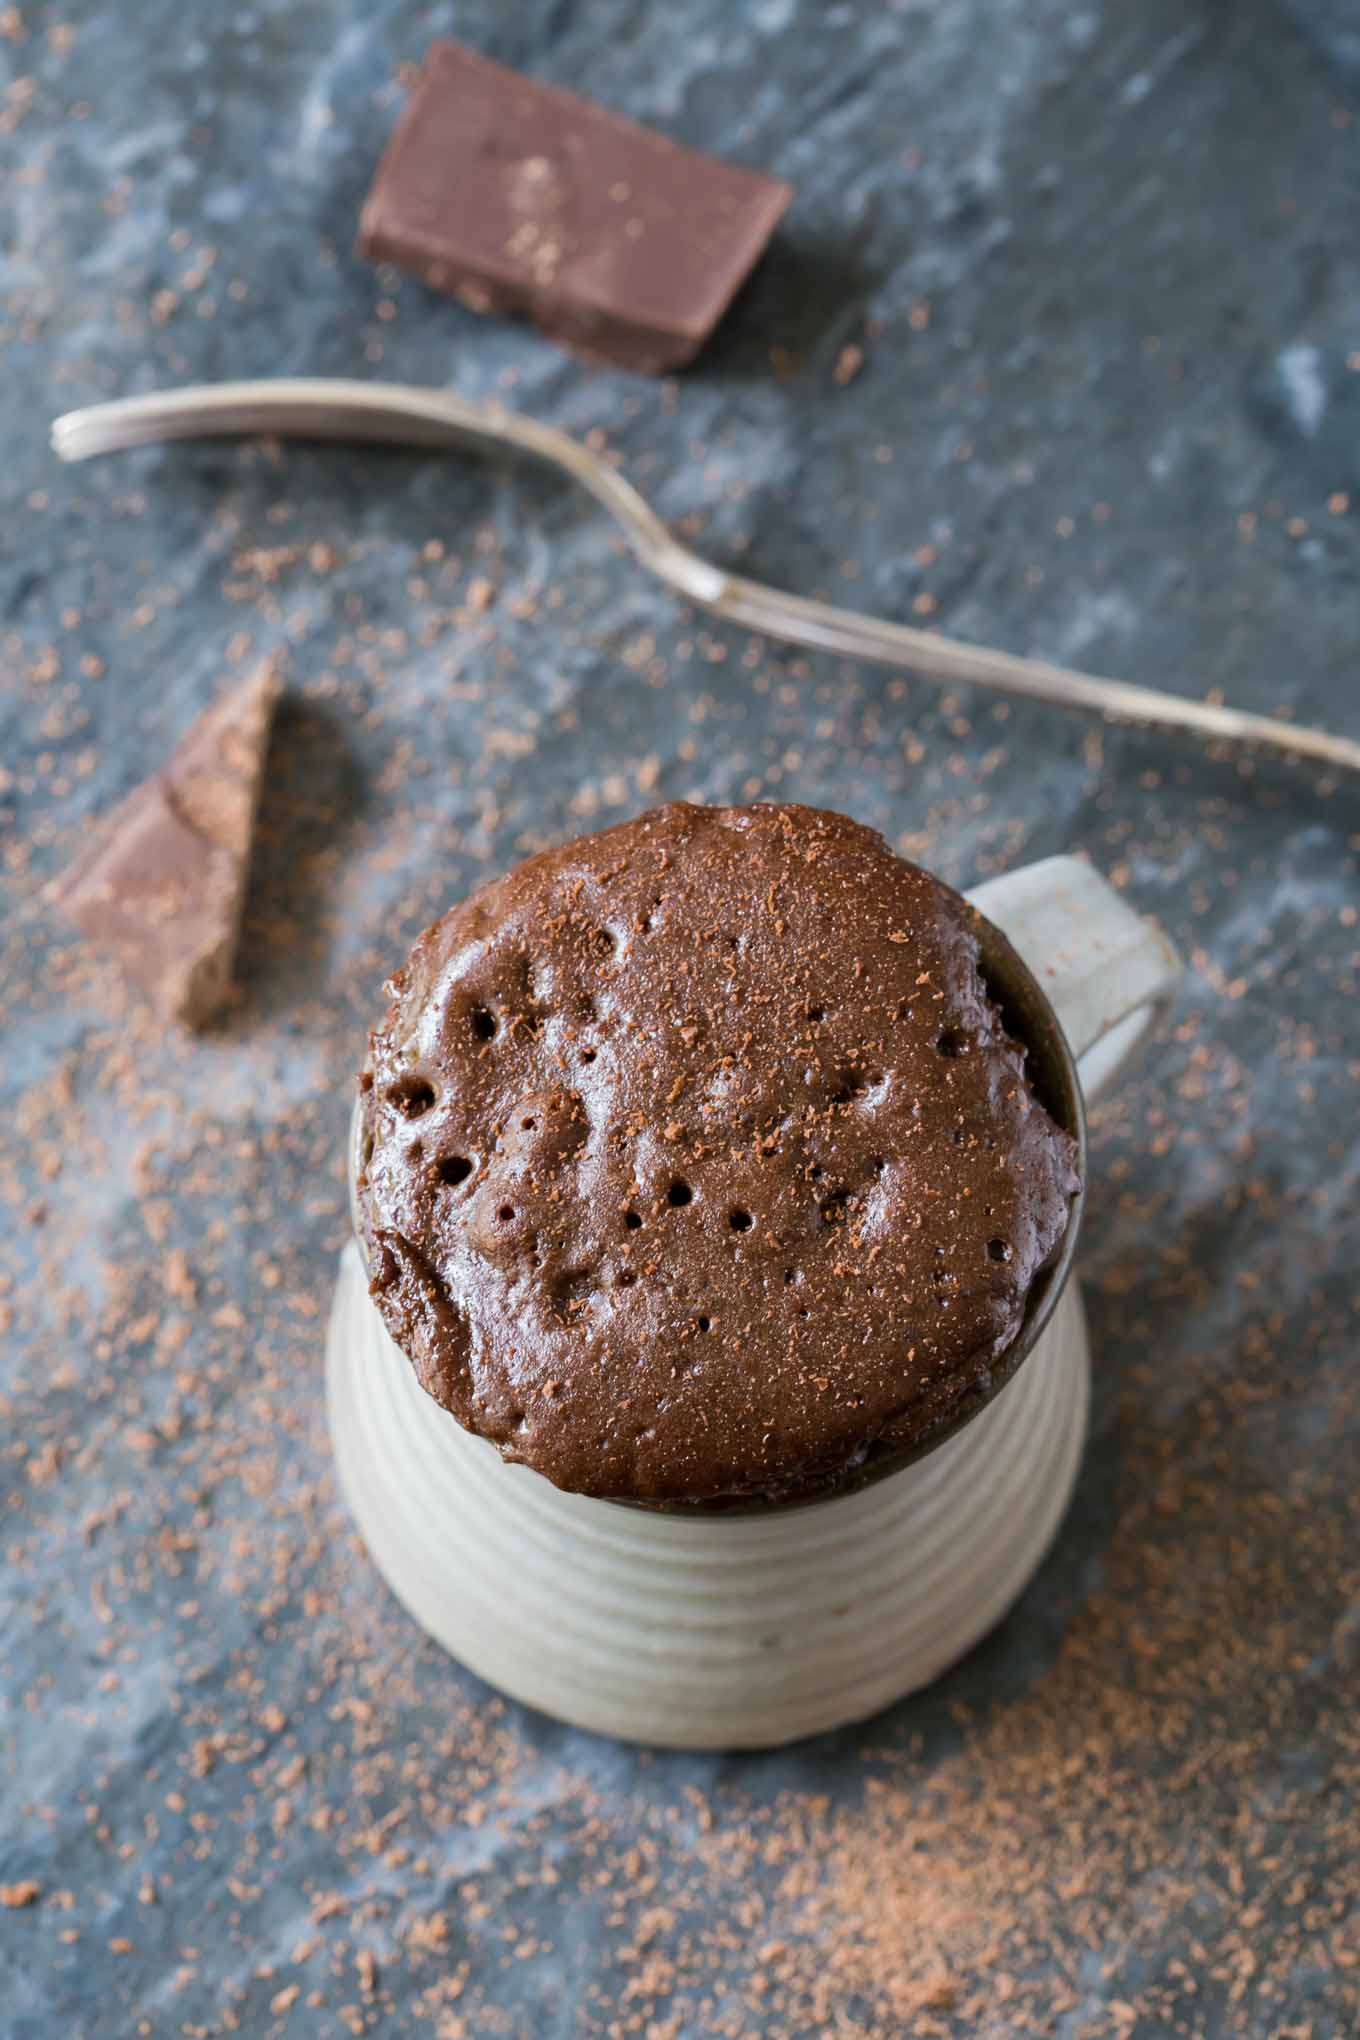 Chocolate cake in a mug recipe is a dream come true for all chocoholics. This no-effort cake cooks in a microwave in minutes! Easy & tasty!